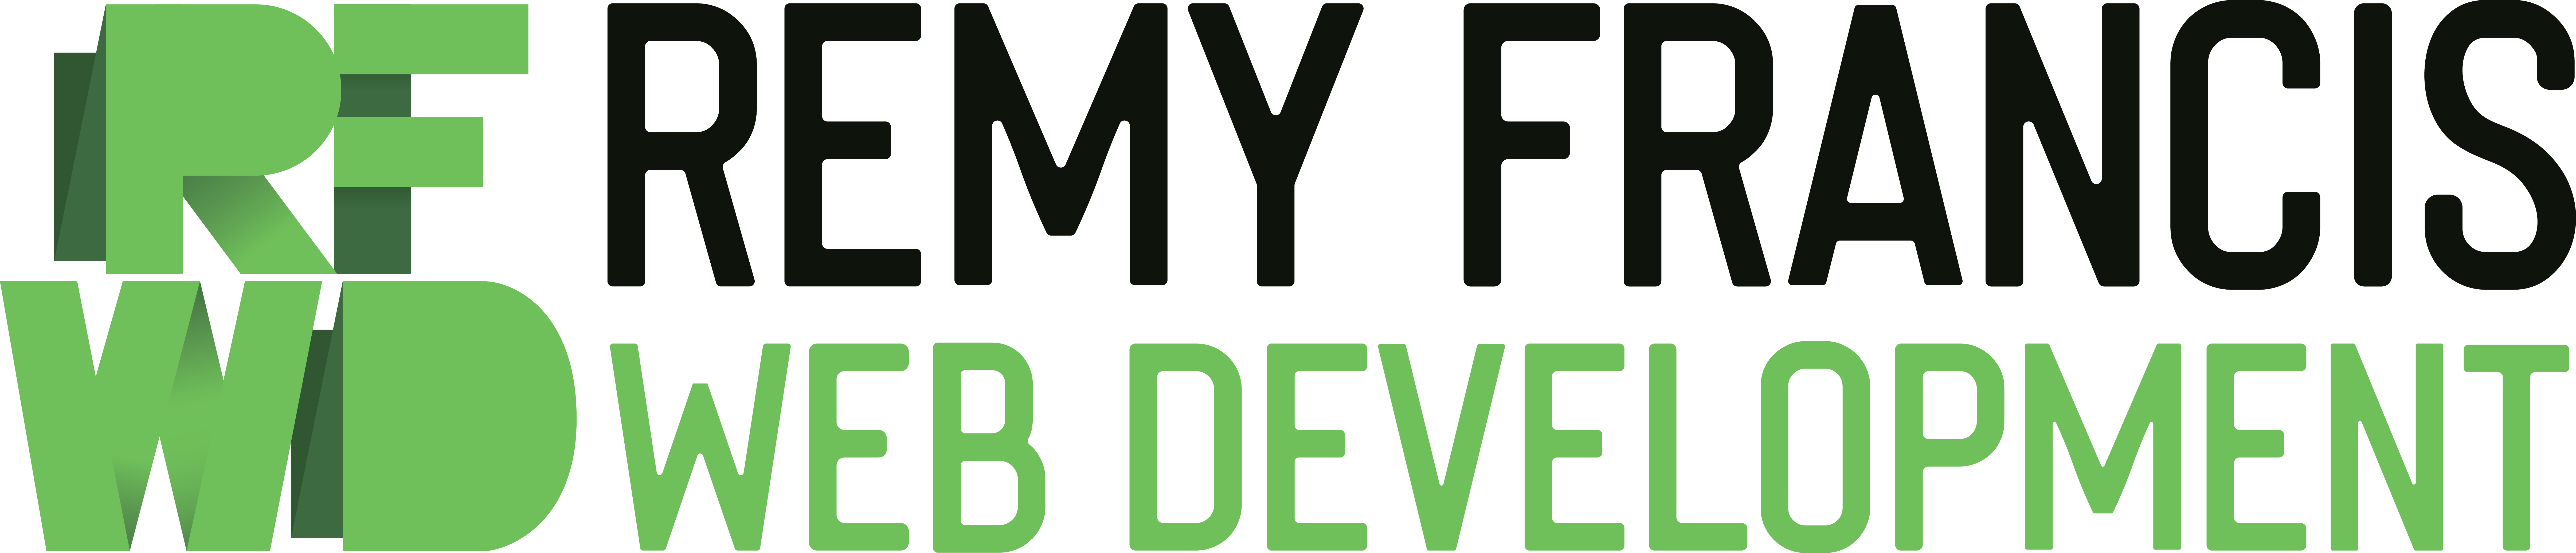 Remy Francis Web Development